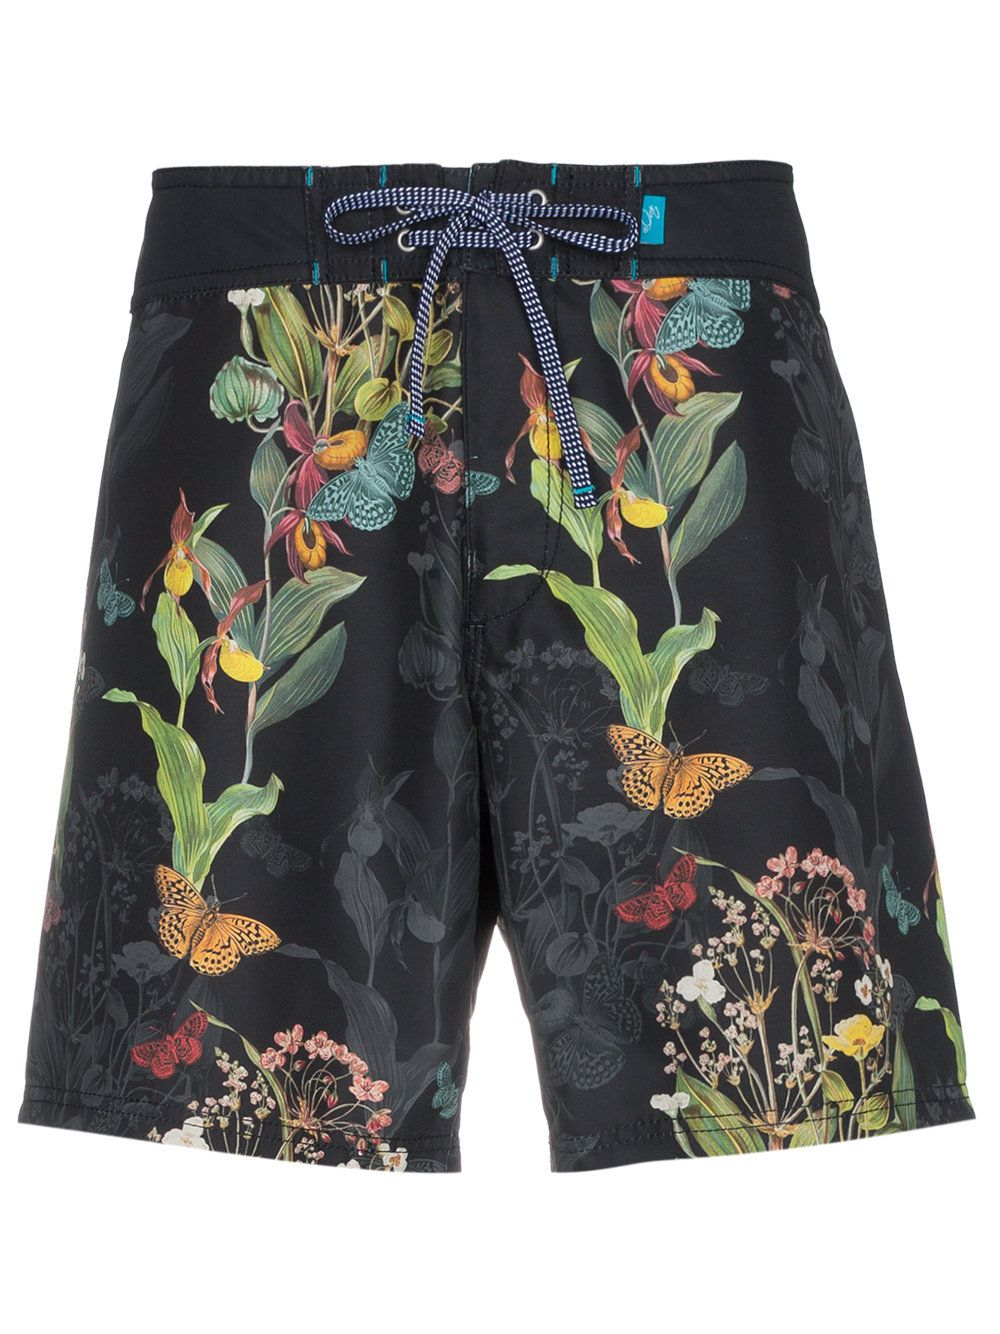 Yellow Floral Buckler swim shorts - Yellow & Orange Riz Clearance Sale Pay With Visa Cheap Price Outlet Wholesale Price QNk3am8u87